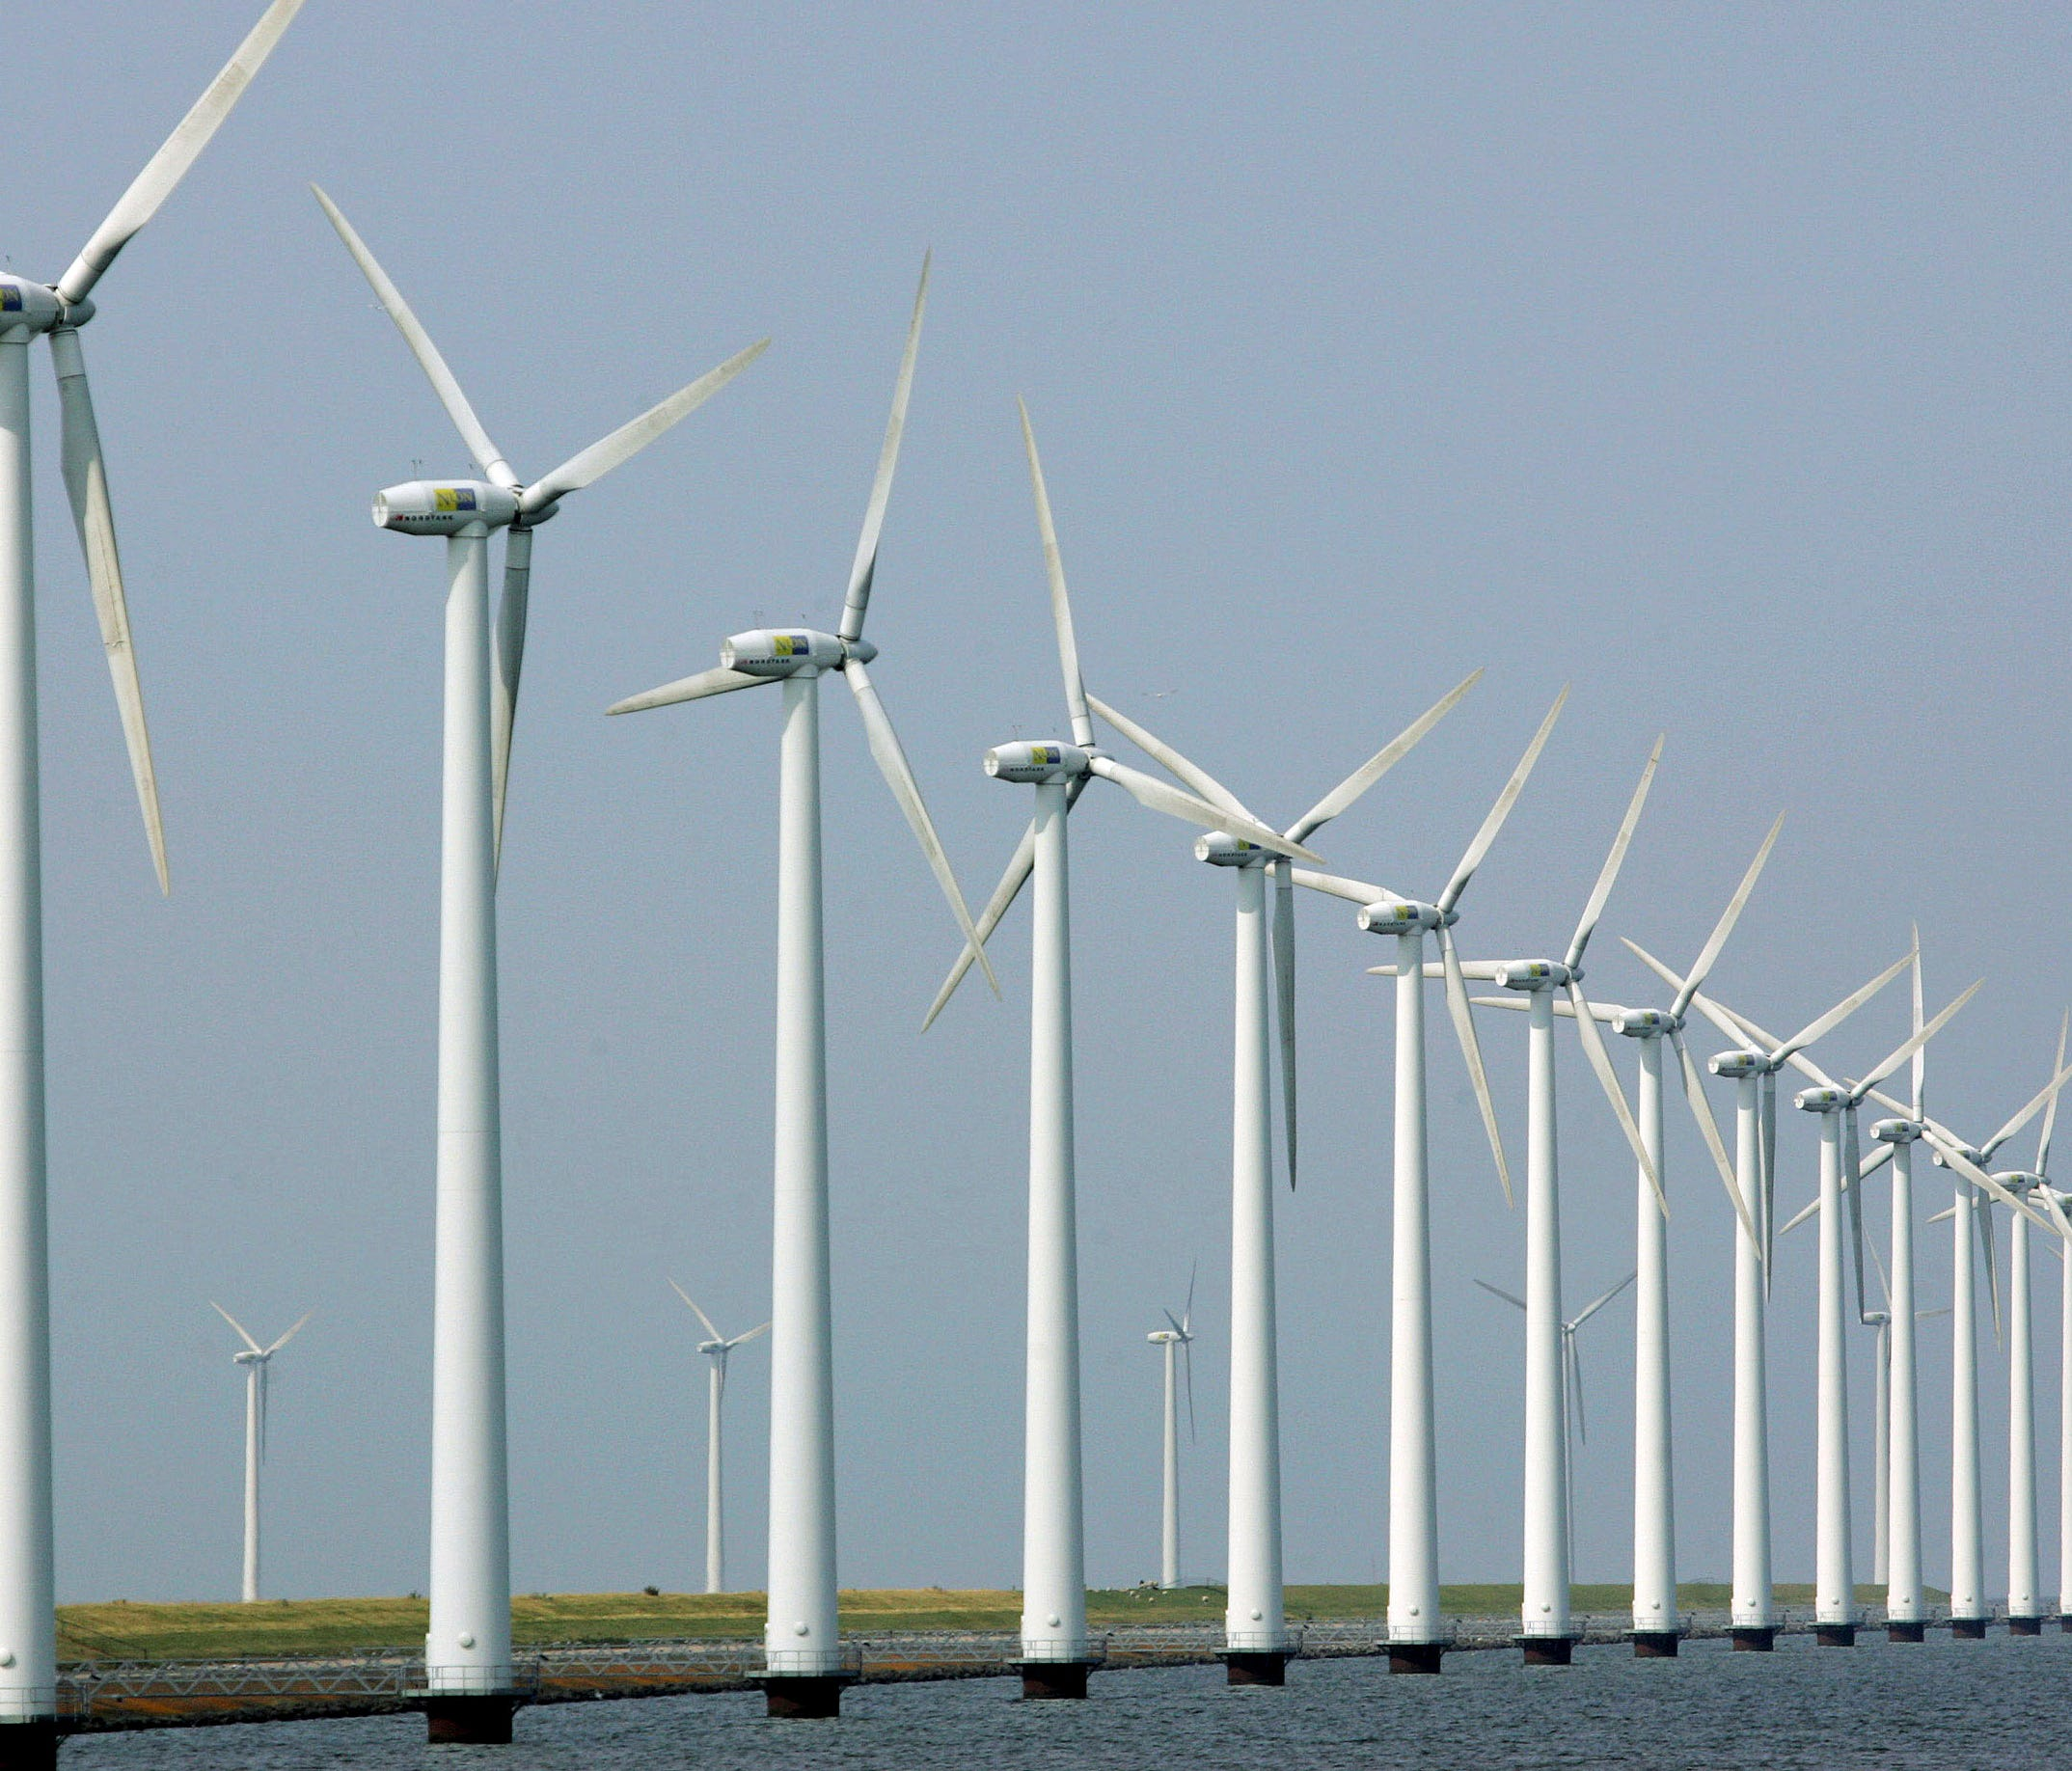 FILE - In this July 27, 2006 file photo, wind turbines stand clustered offshore in Dronten, the Netherlands.  U.S. Interior Secretary Ken Salazar will announce Wednesday, April 28, 2010, his decision whether the Cape Wind project can proceed off the